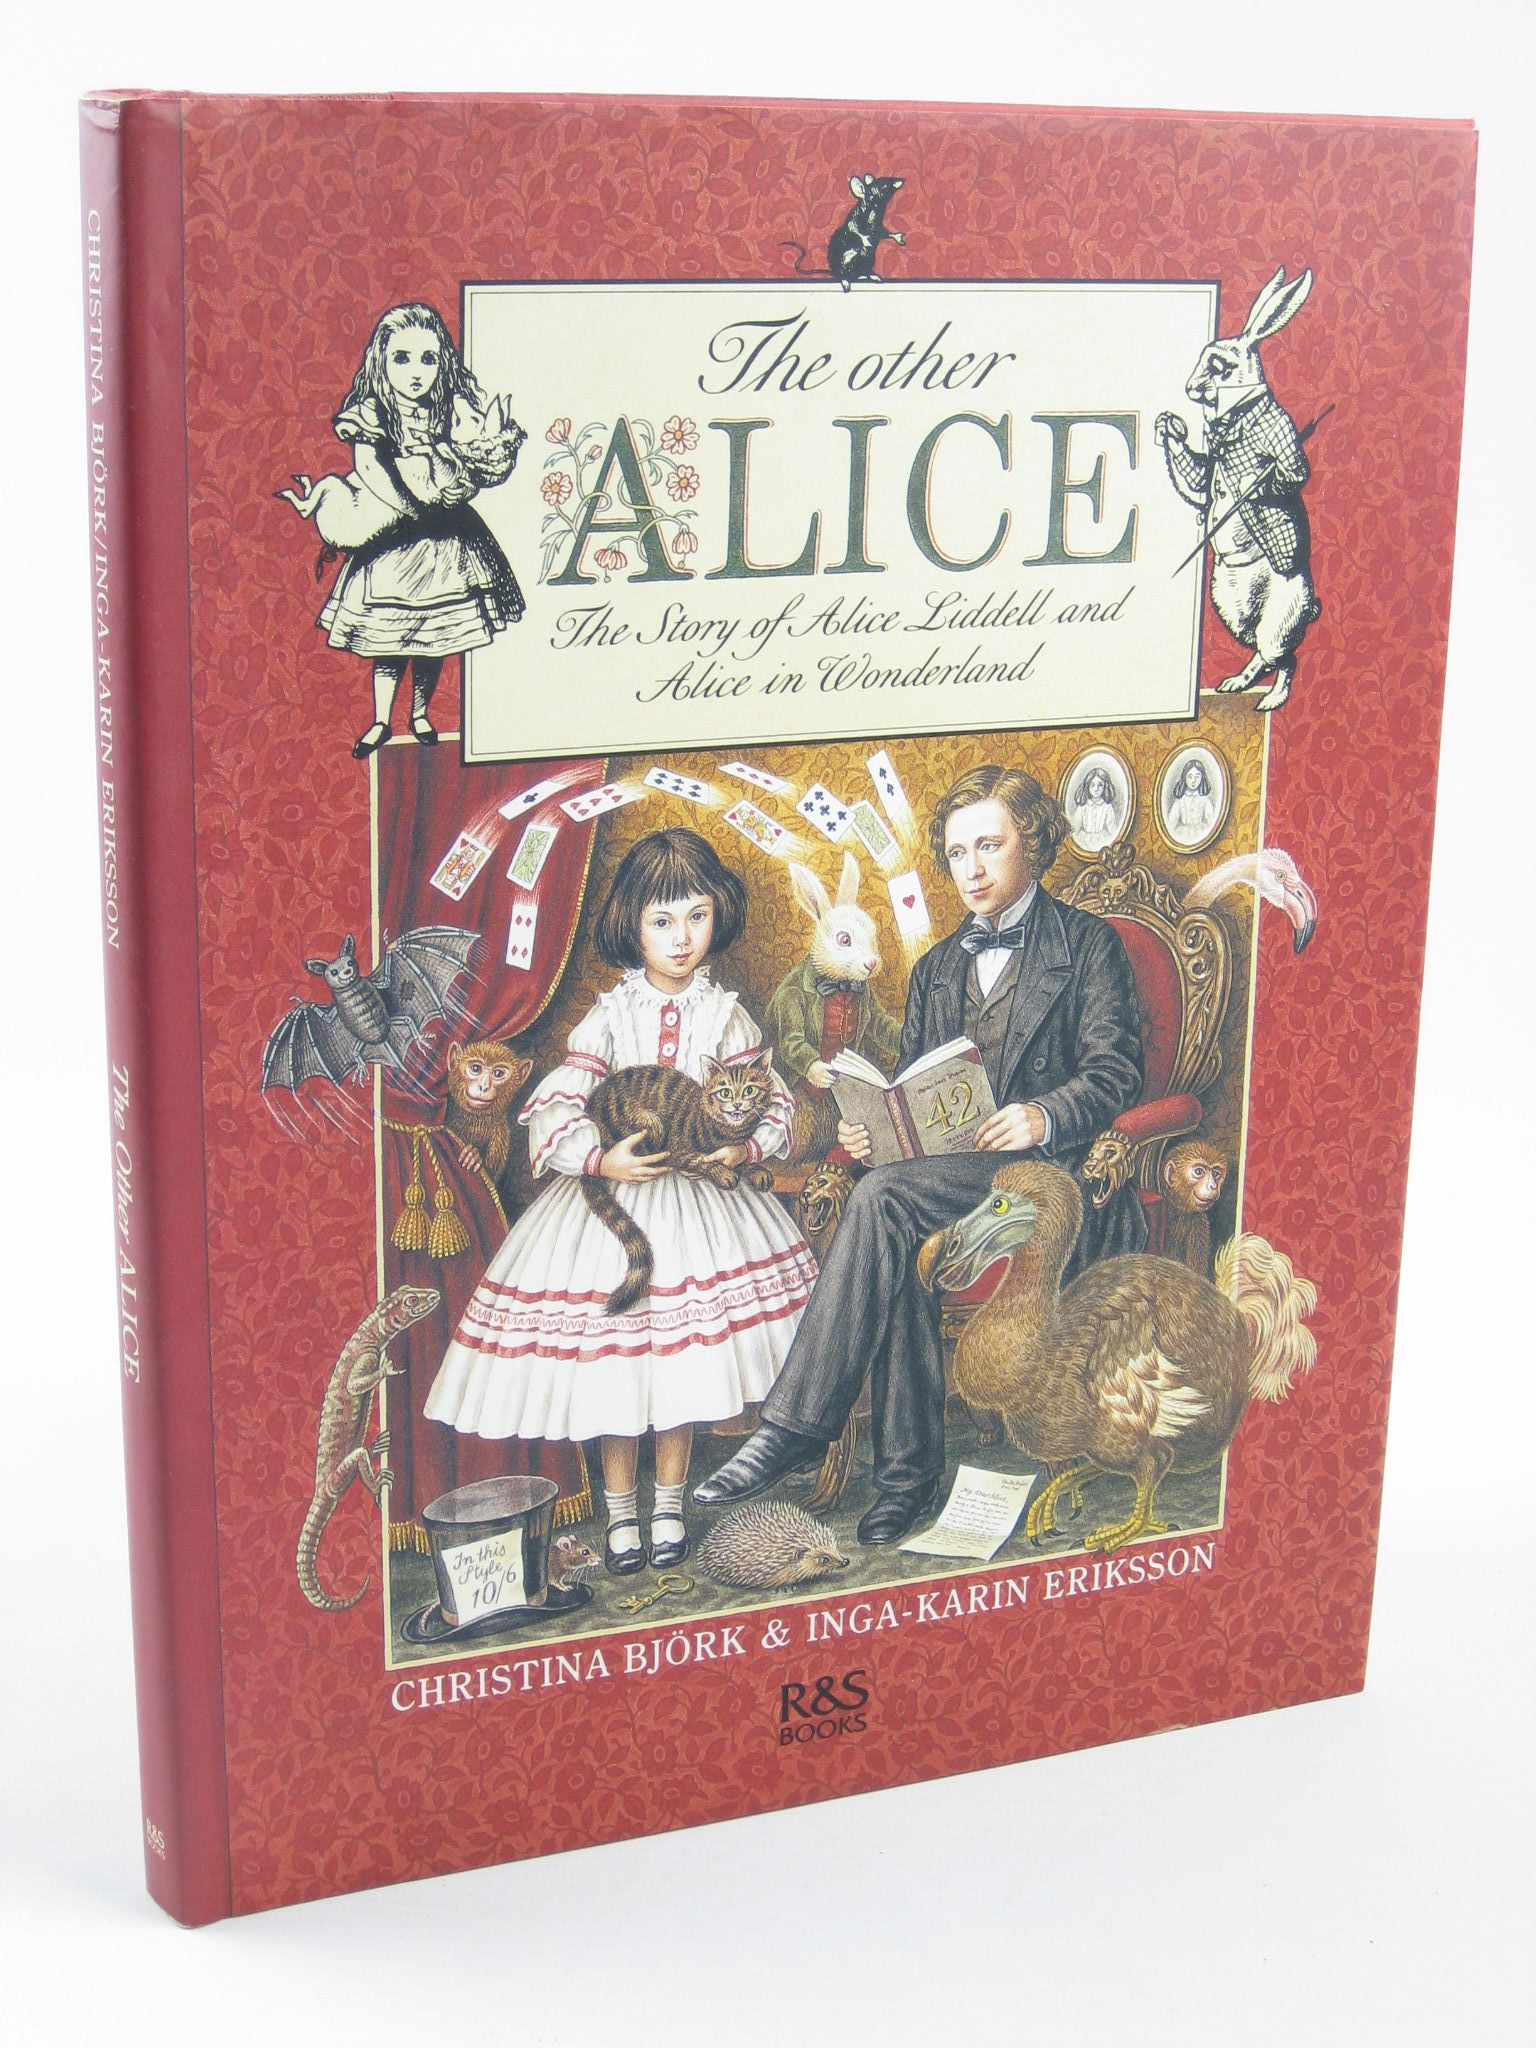 Photo of THE OTHER ALICE written by Bjork, Christina illustrated by Eriksson, Inga-Karin published by Raben & Sjogren (STOCK CODE: 1311202)  for sale by Stella & Rose's Books